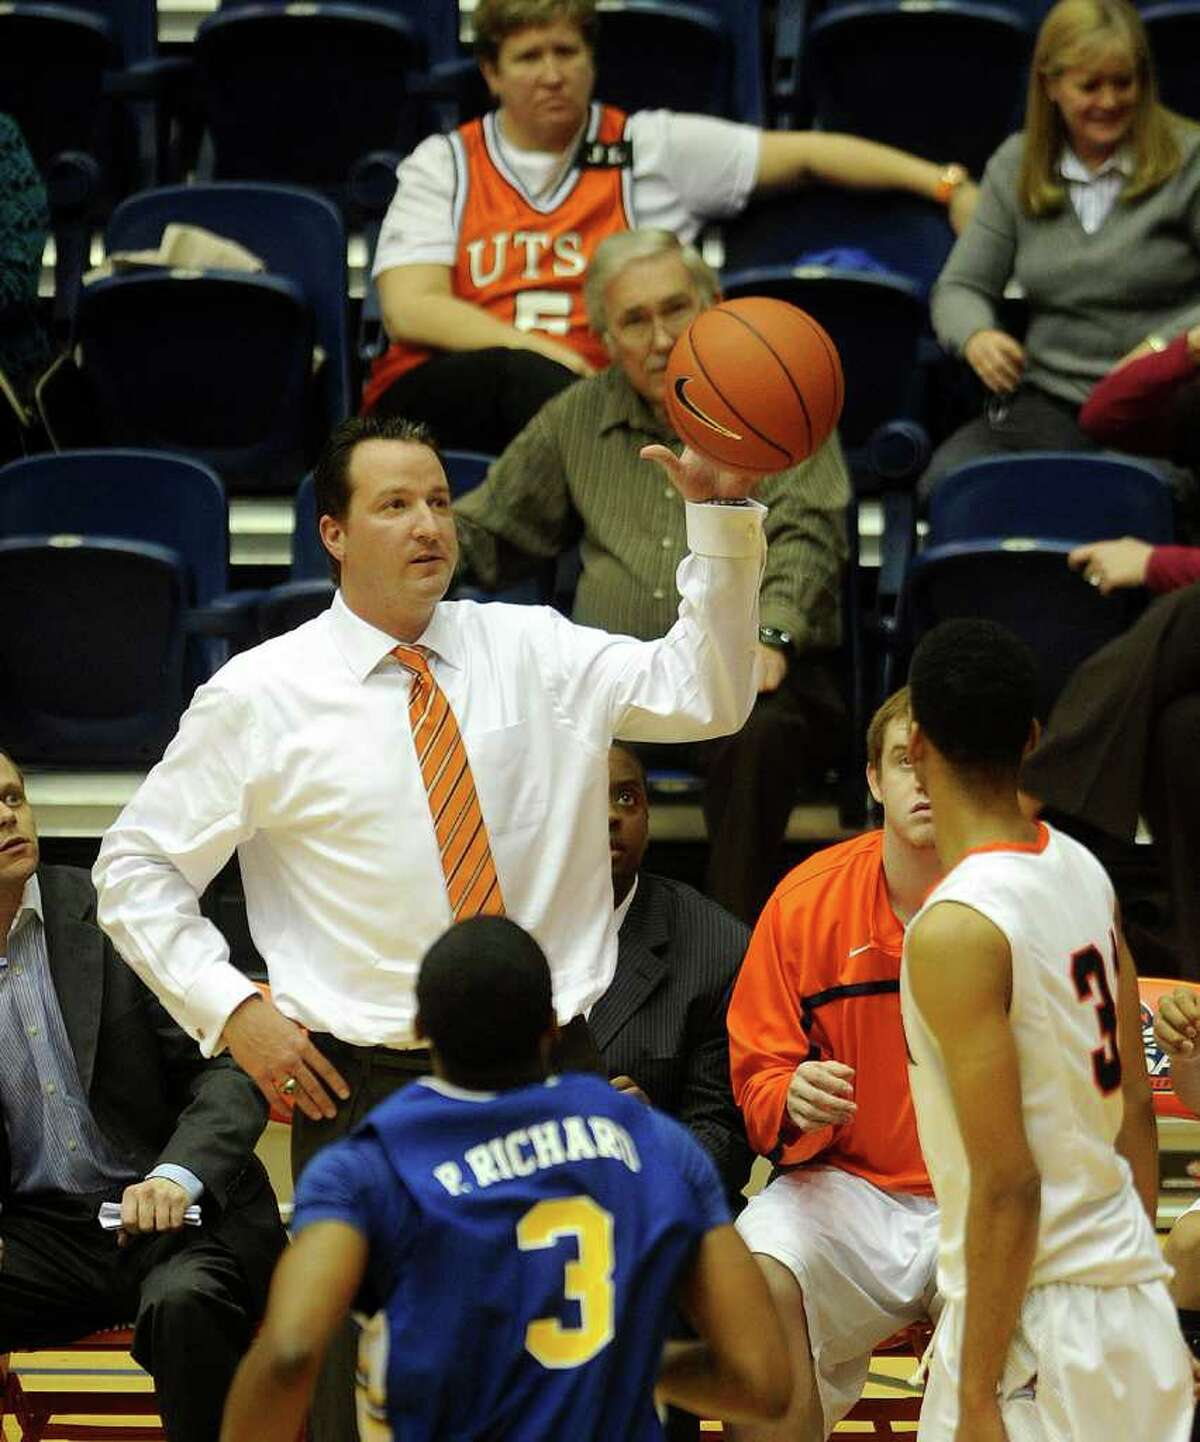 UTSA head basketball coach Brooks Thompson catches a ball that was batted out of bounds during Southland Conference action against McNeese State at the UTSA Convocation Center on Wednesday, Feb. 16, 2011. BILLY CALZADA / gcalzada@express-news.net McNeese State at UTSA basketball